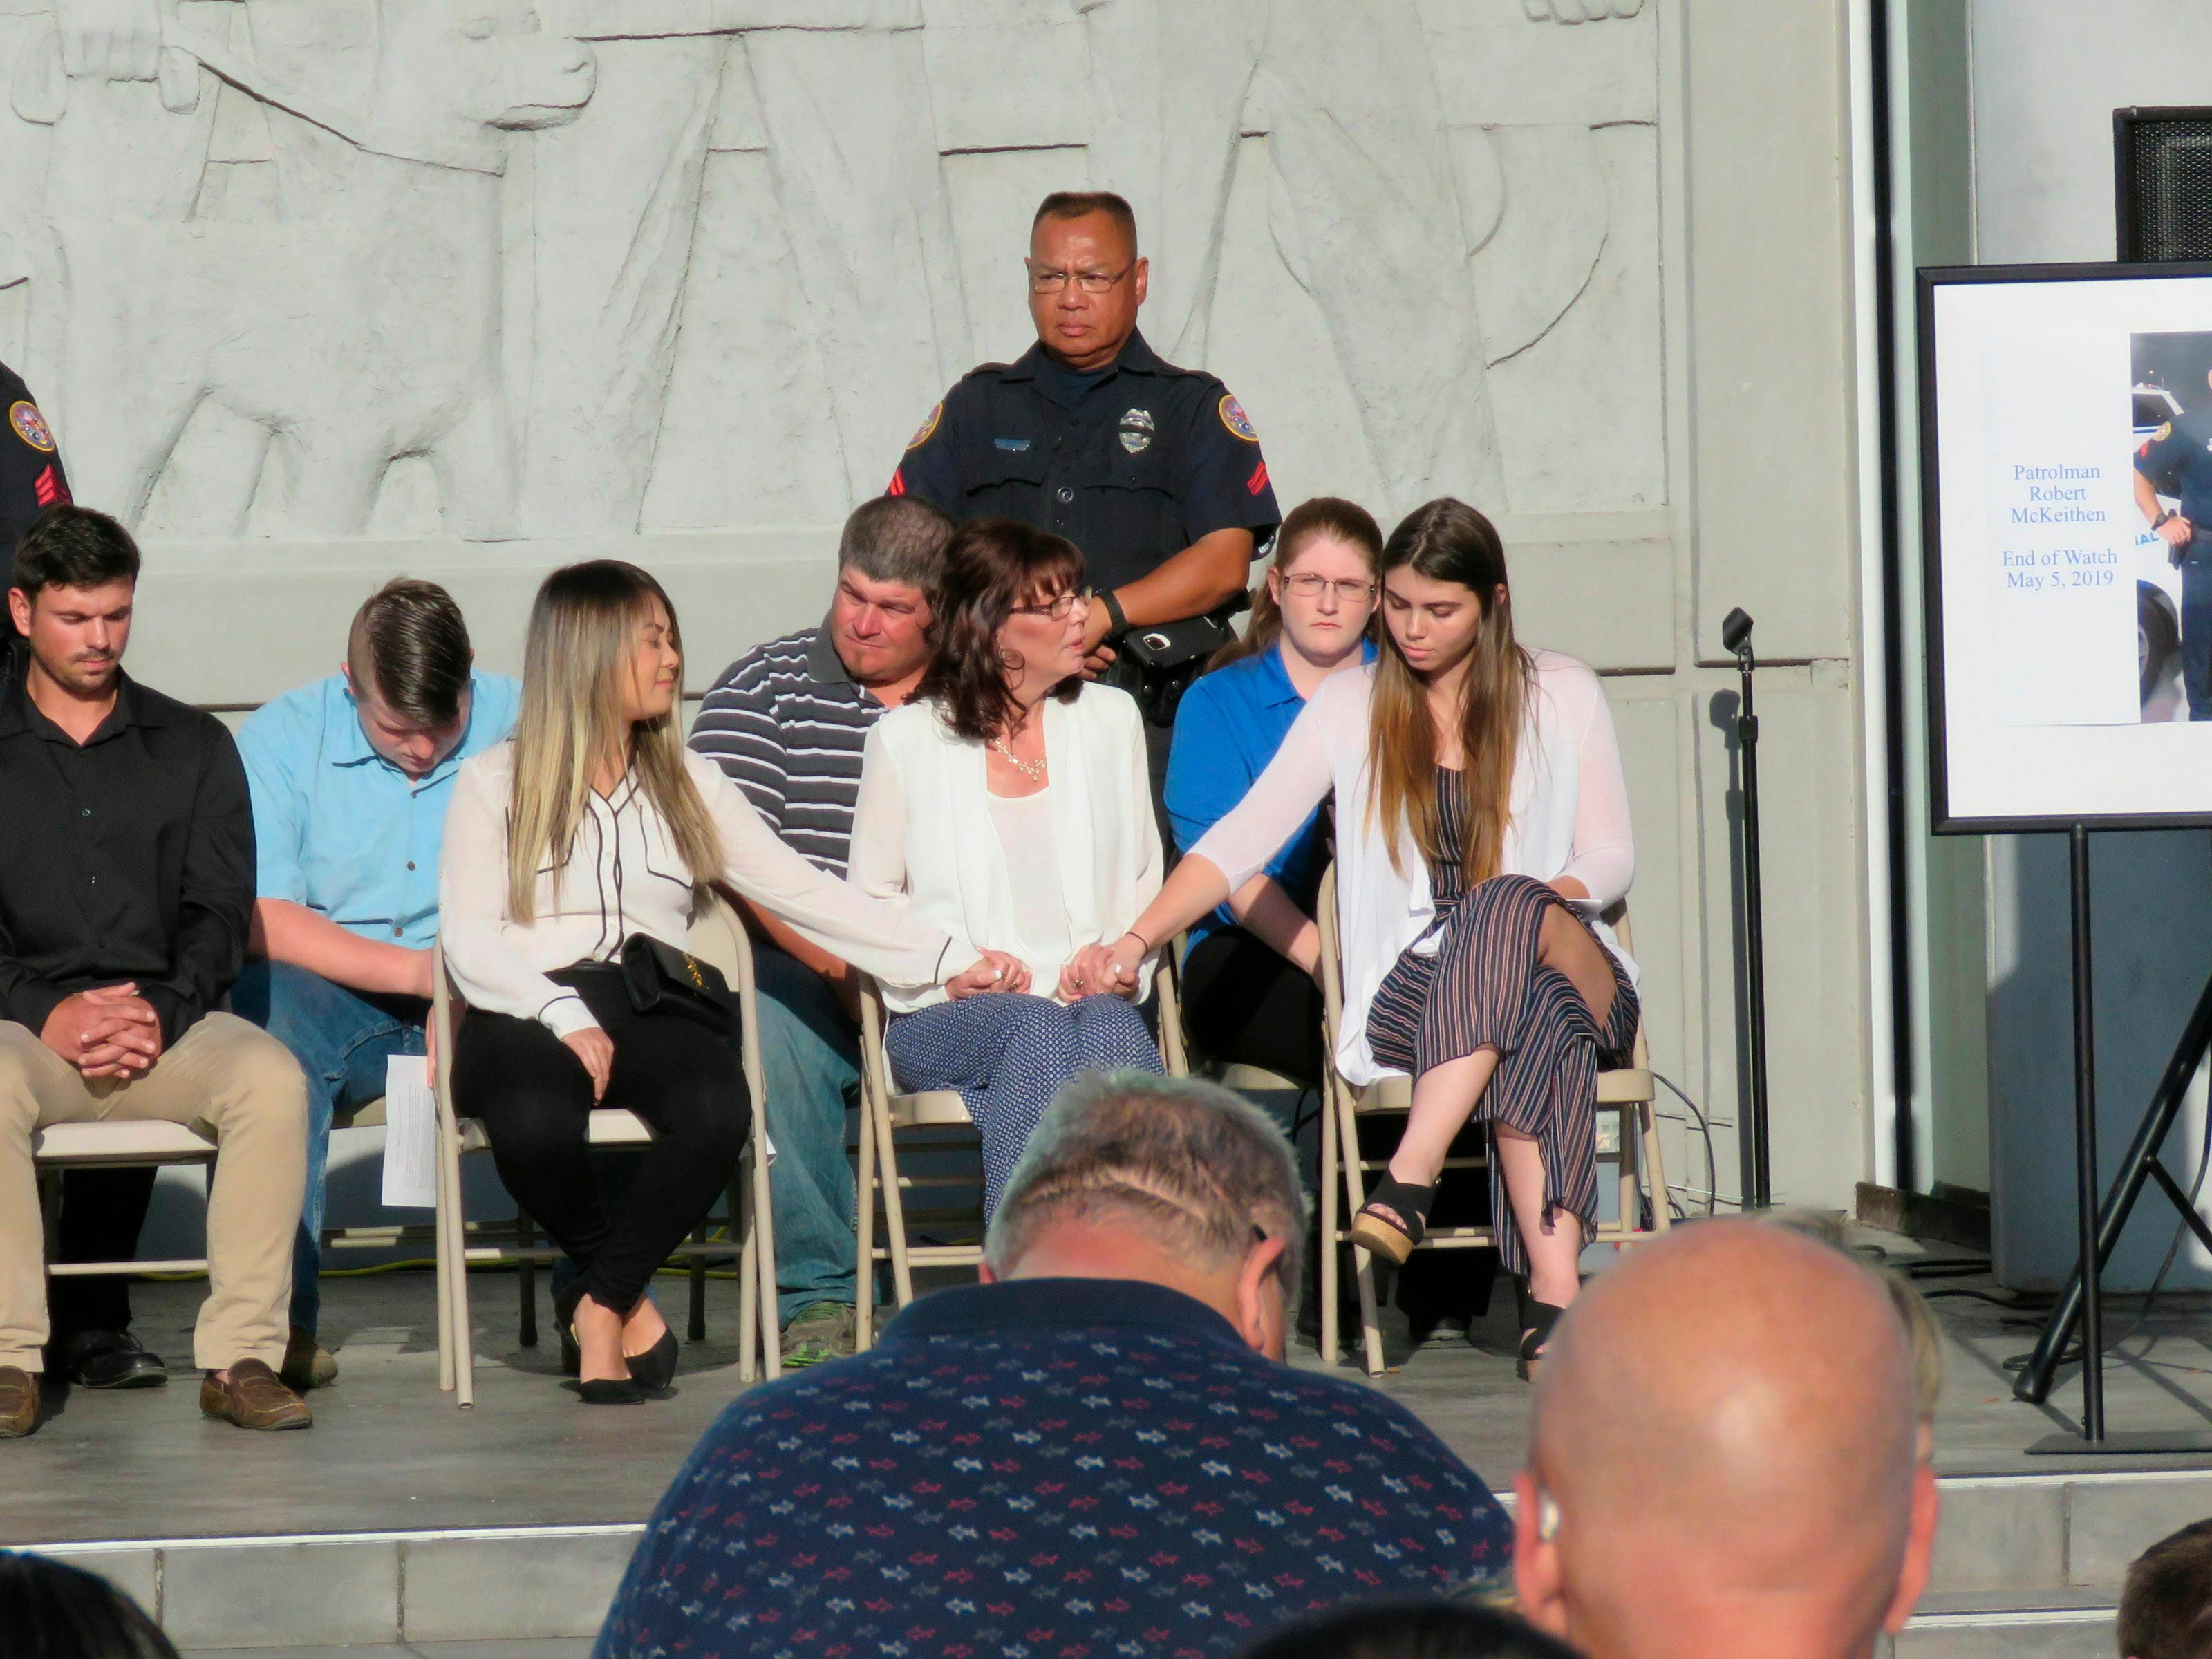 Pamela McKeithen, seated front second from right, sits with her family onstage during a memorial service for her husband, Biloxi Police Patrolman Robert McKeithen, on Tuesday, May 7, 2019, outside the city's Public Safety Center, where the police department is located in Biloxi, Miss. Patrolman Robert McKeithen was killed Sunday night in the parking lot.